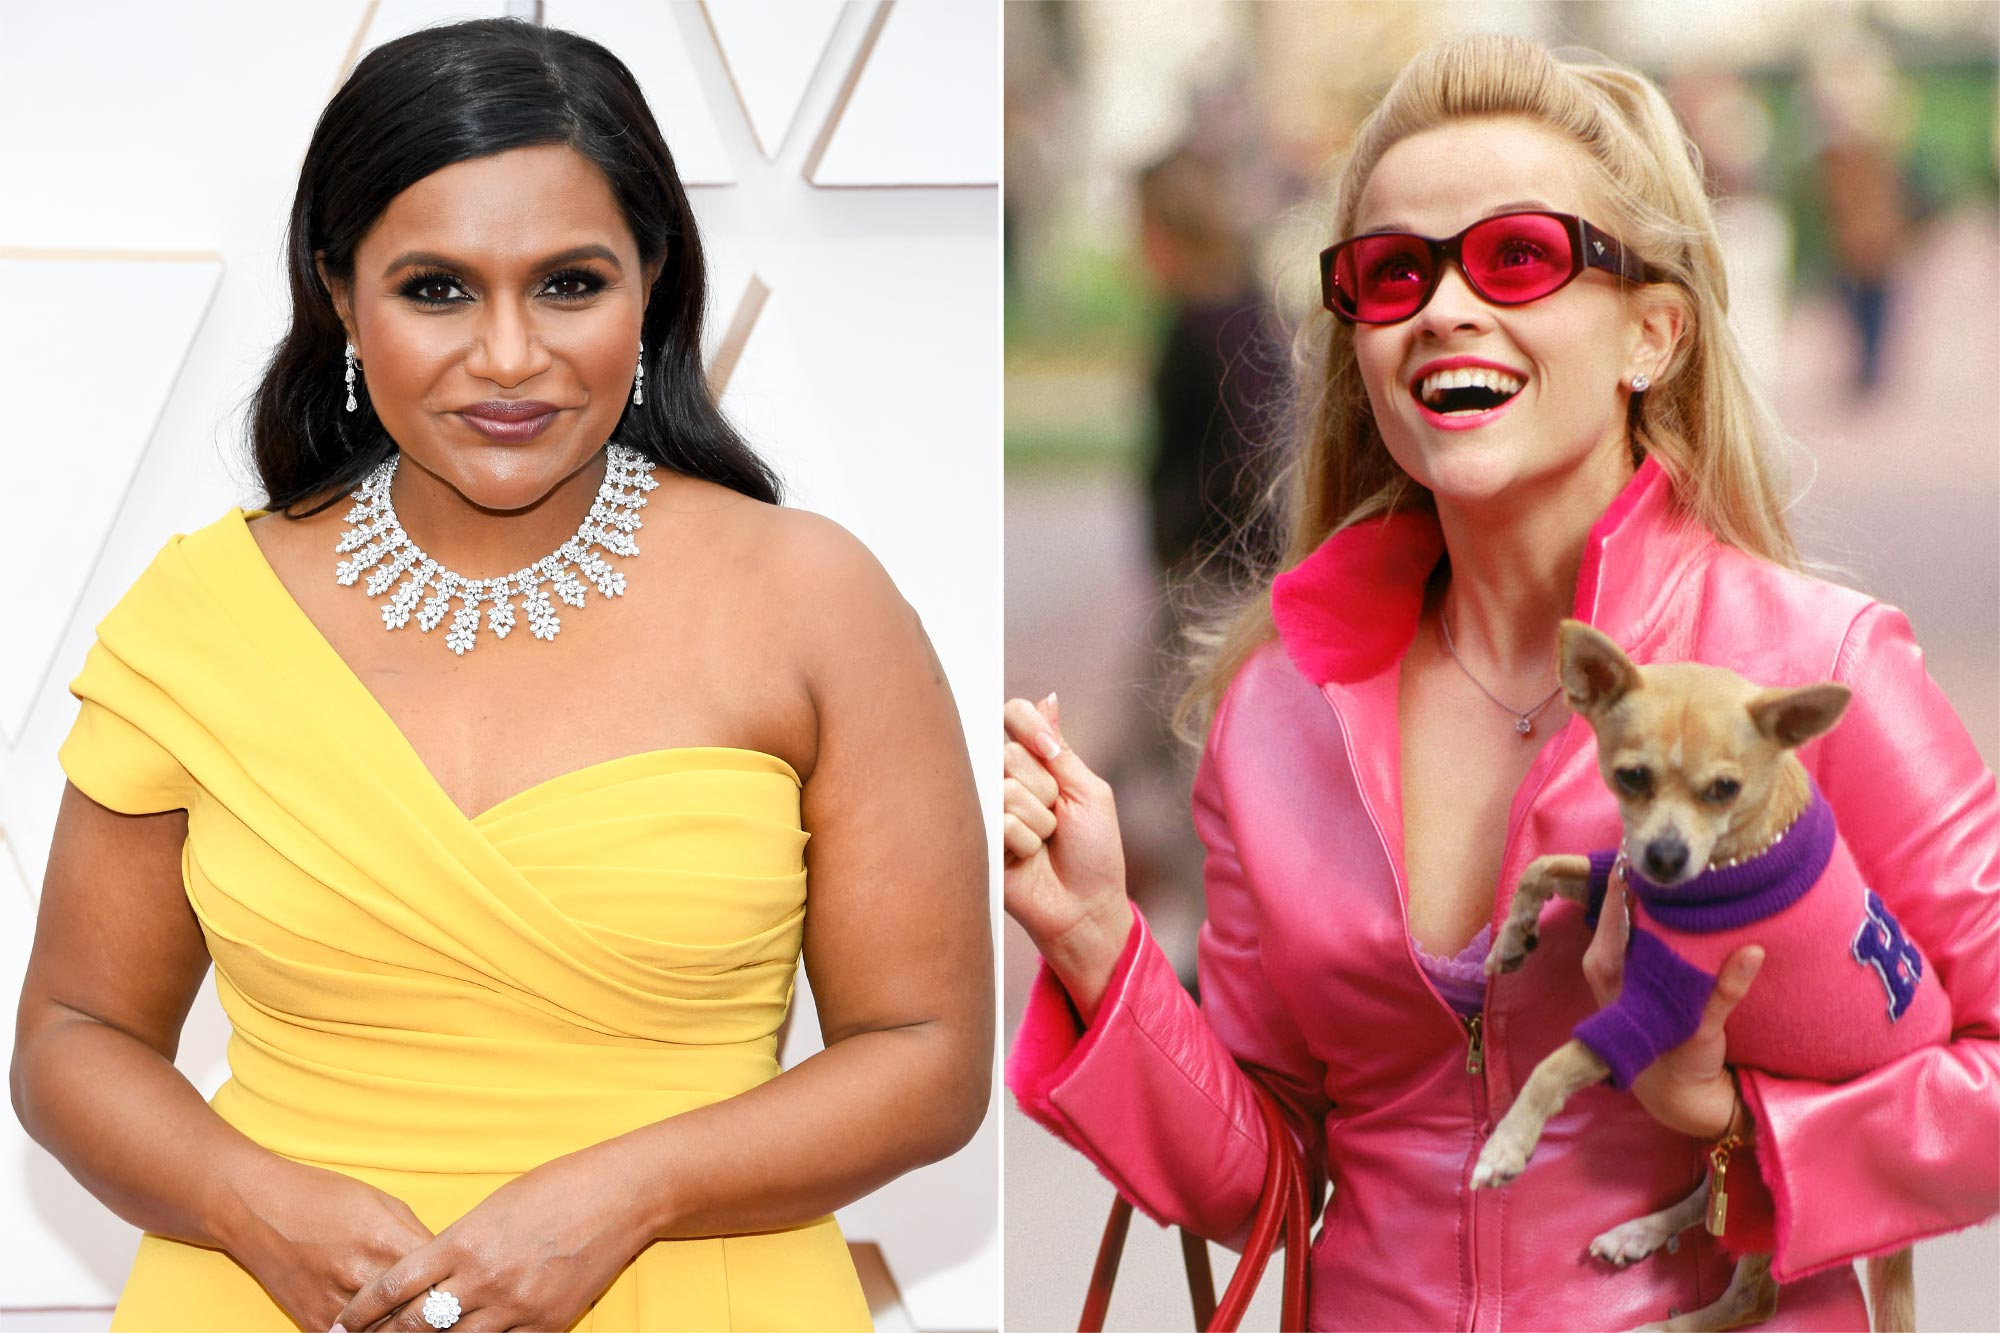 Mindy Kaling, Legally Blonde